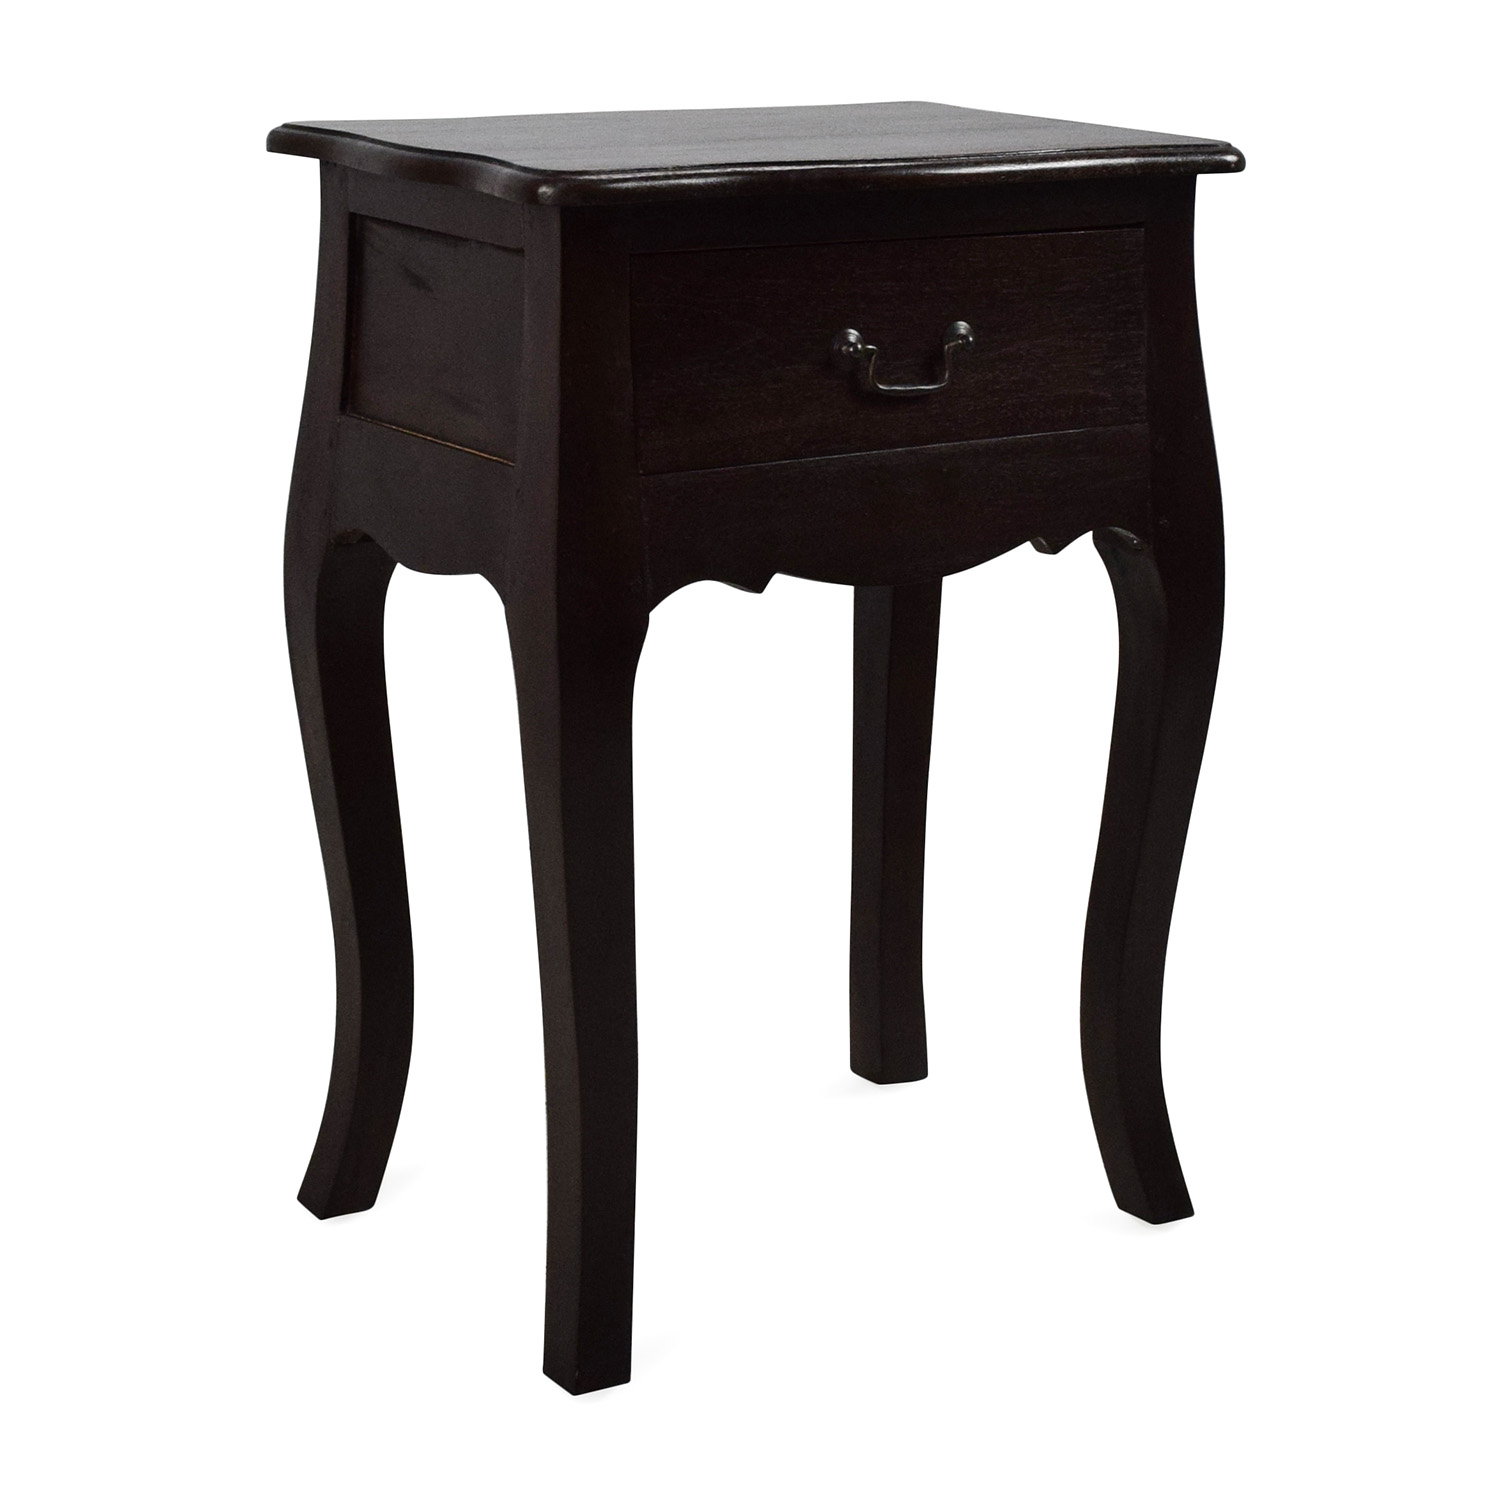 Home Goods Home Goods Classic End Table for sale. 73  OFF   Home Goods Home Goods Classic End Table   Tables